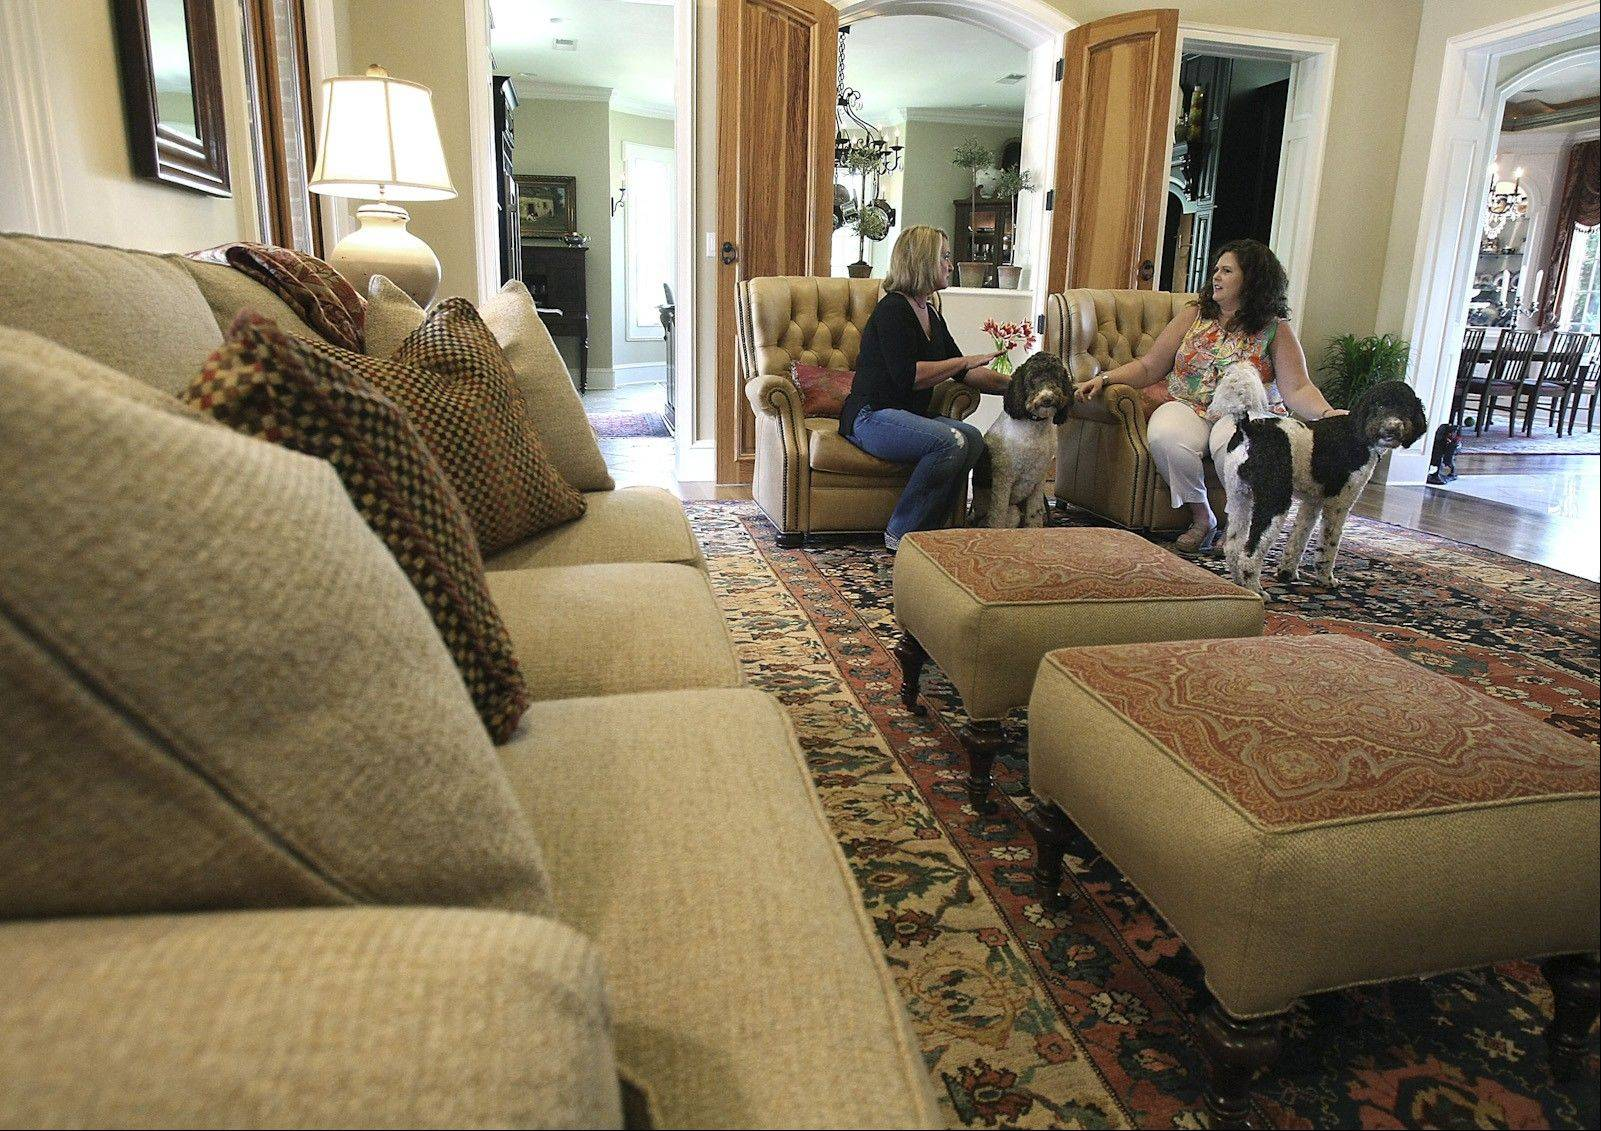 Rita Christian, left, and Stacy McSpadden relax in a pair of U.S.-made, matching aniline dyed leather recliners from Hancock and Moore. Also shown are Christian's Labradoodles, Napoleon and Josephine